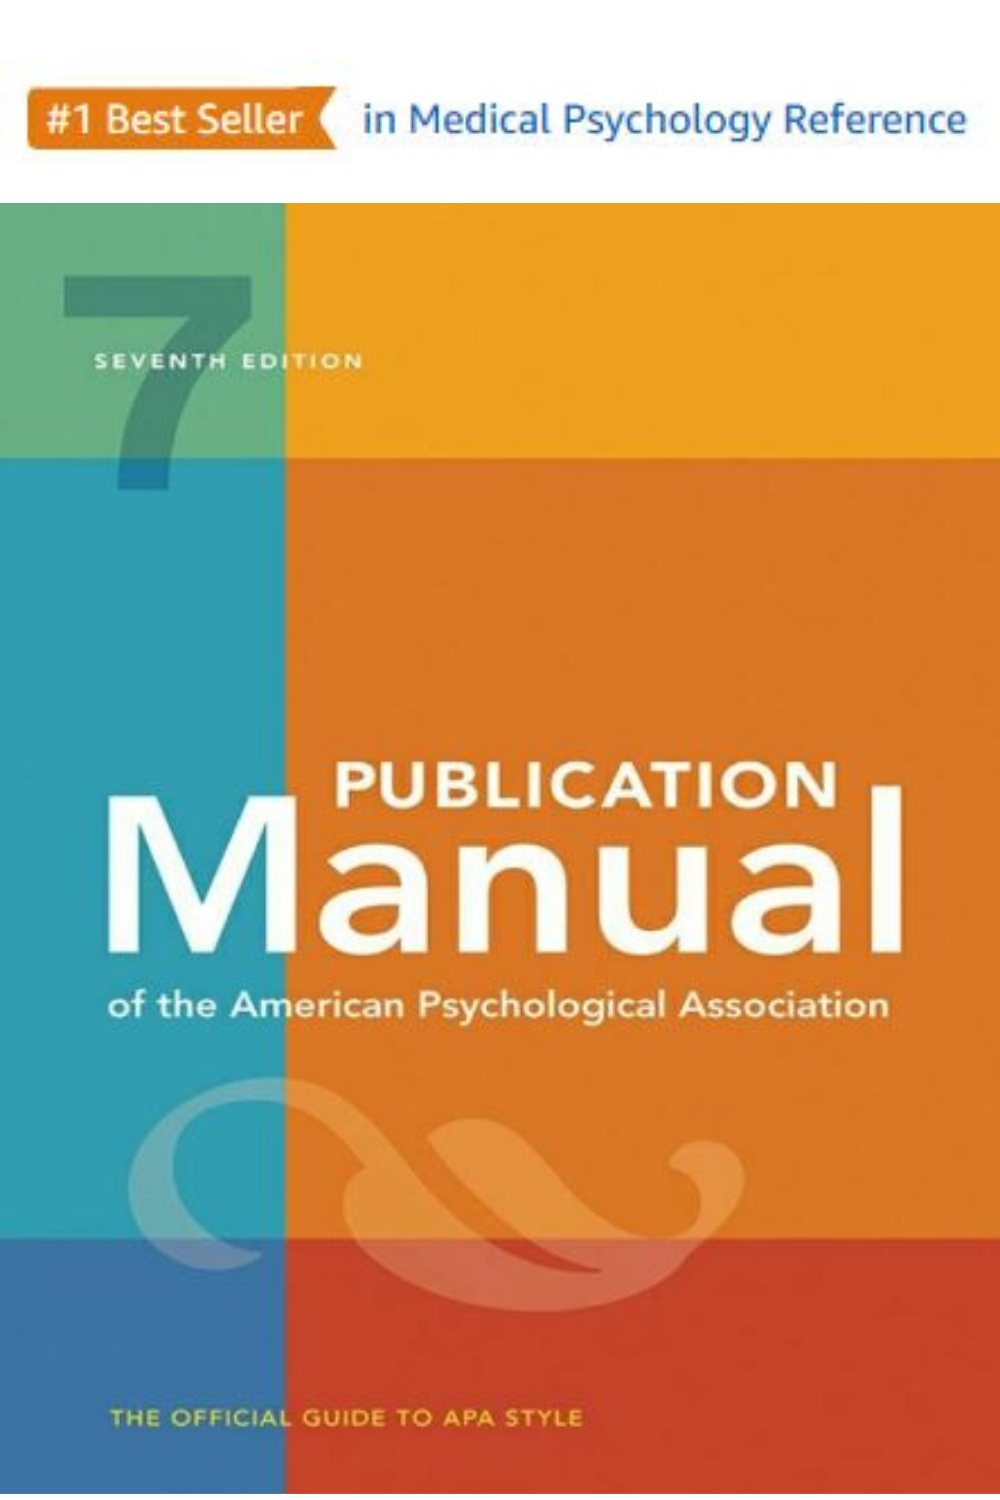 Publication Manual Of The American Psychological Association 7th Edition 2020 Copyright Seve Psychology Behavioral Science How To Cite A Book Chapter Apa